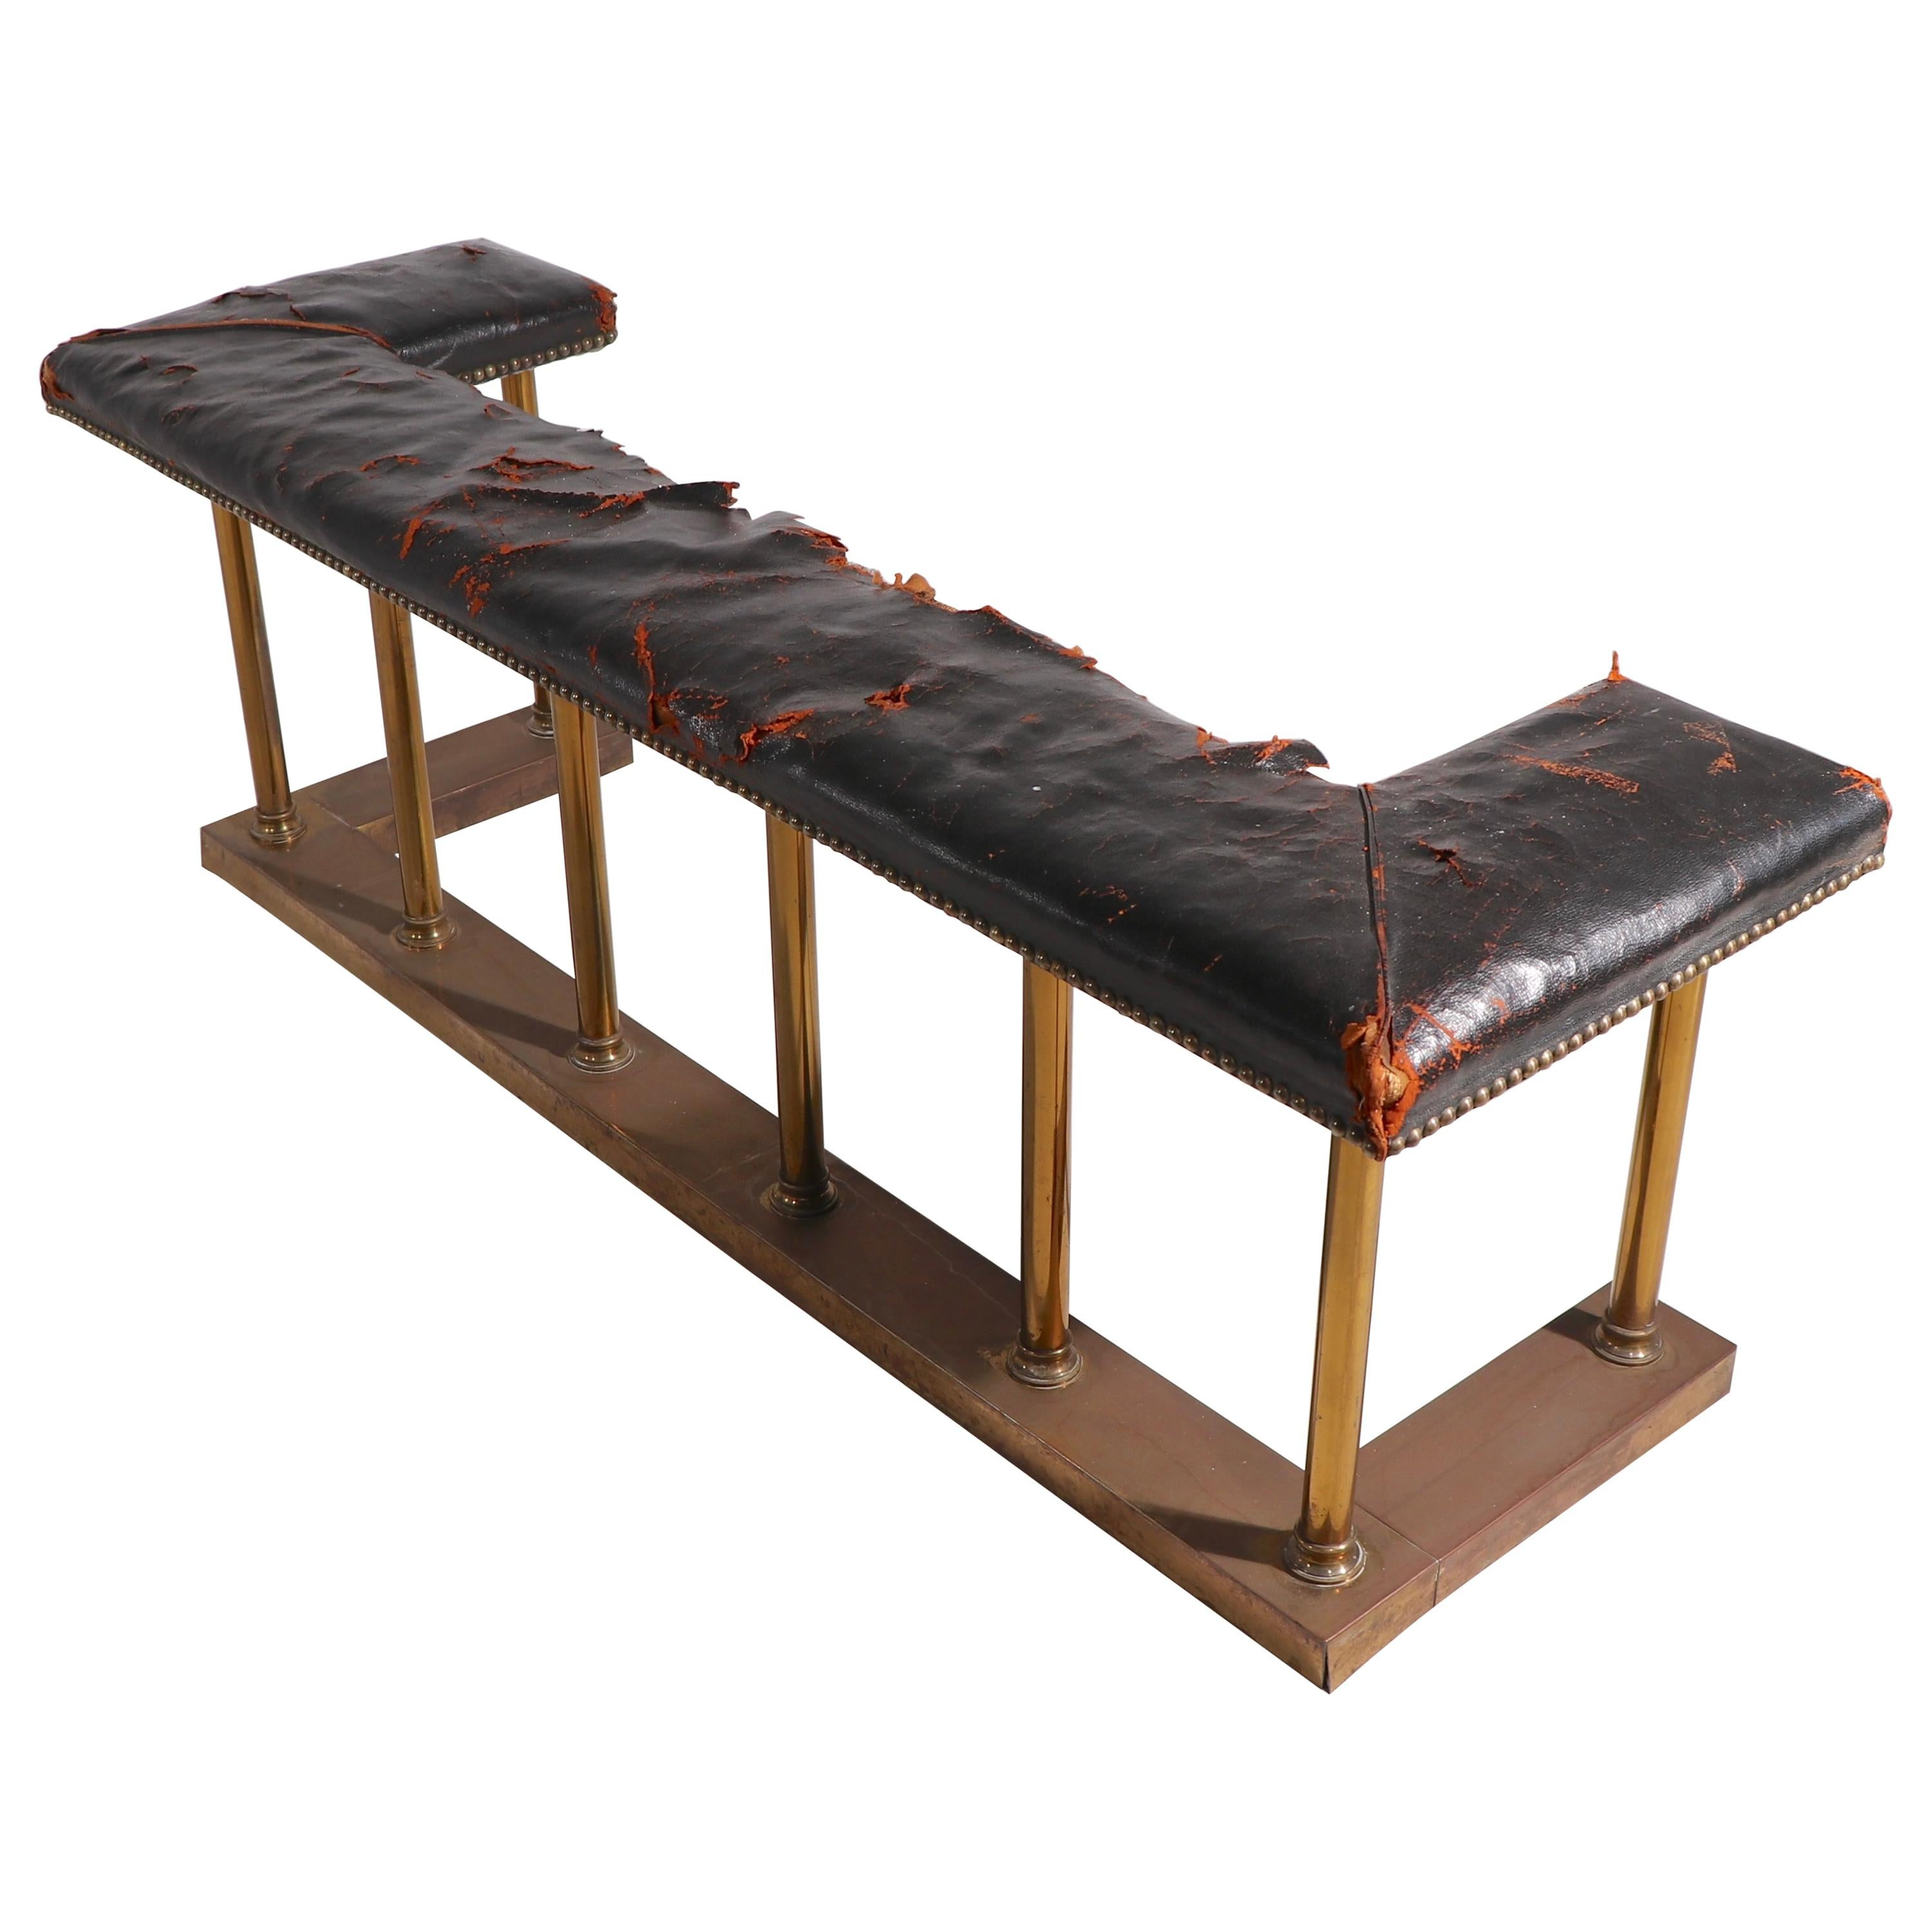 Club Bench Fender Brass with Leather Seat